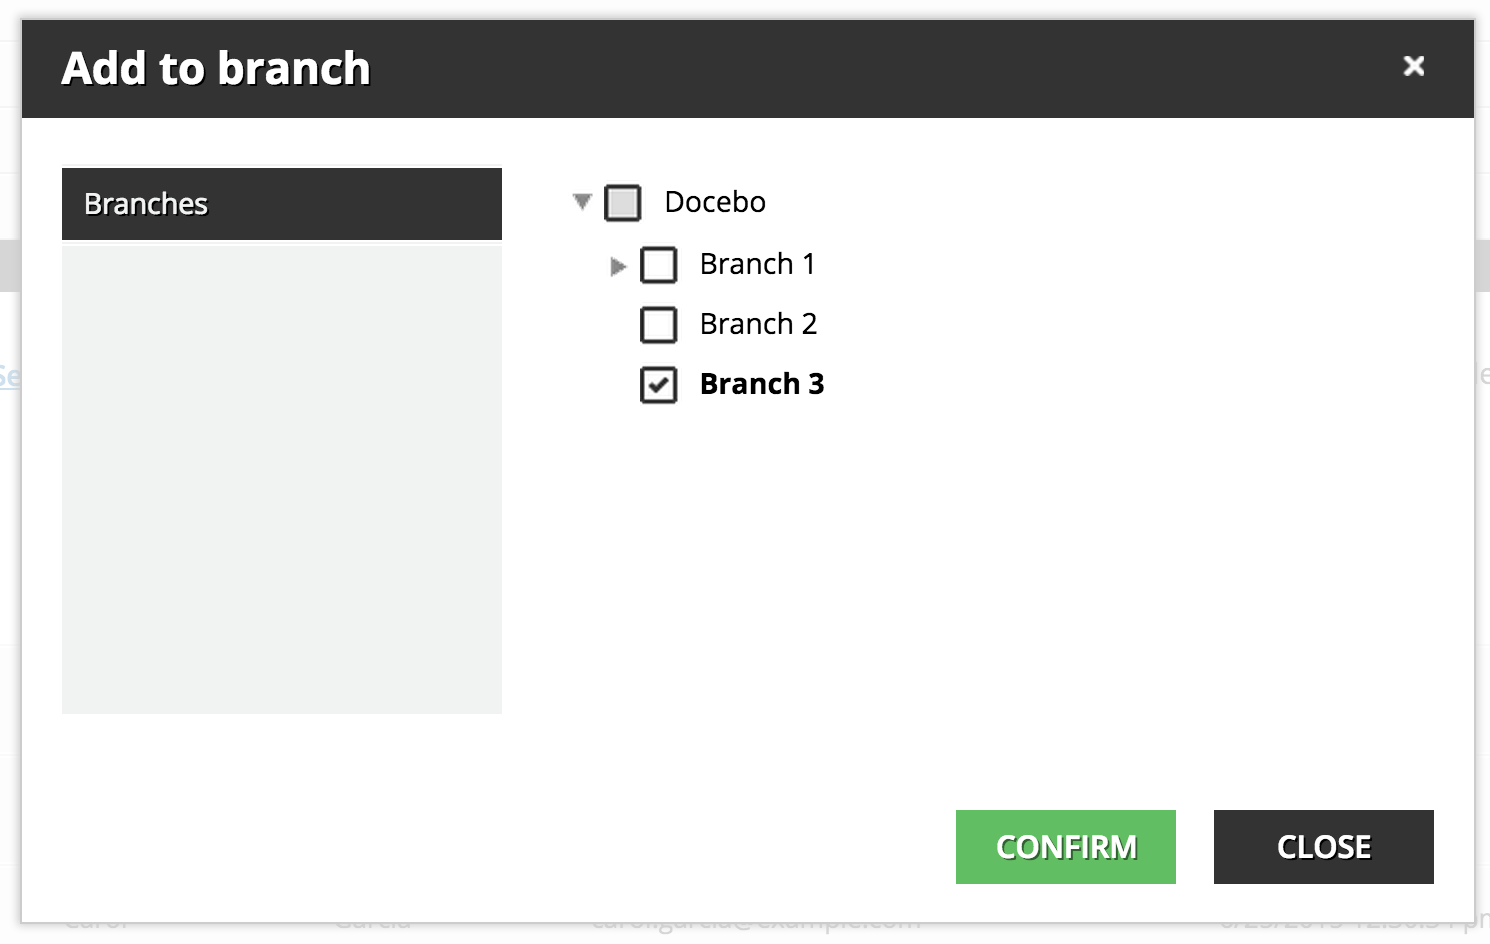 organize users Add to branch - Confirm